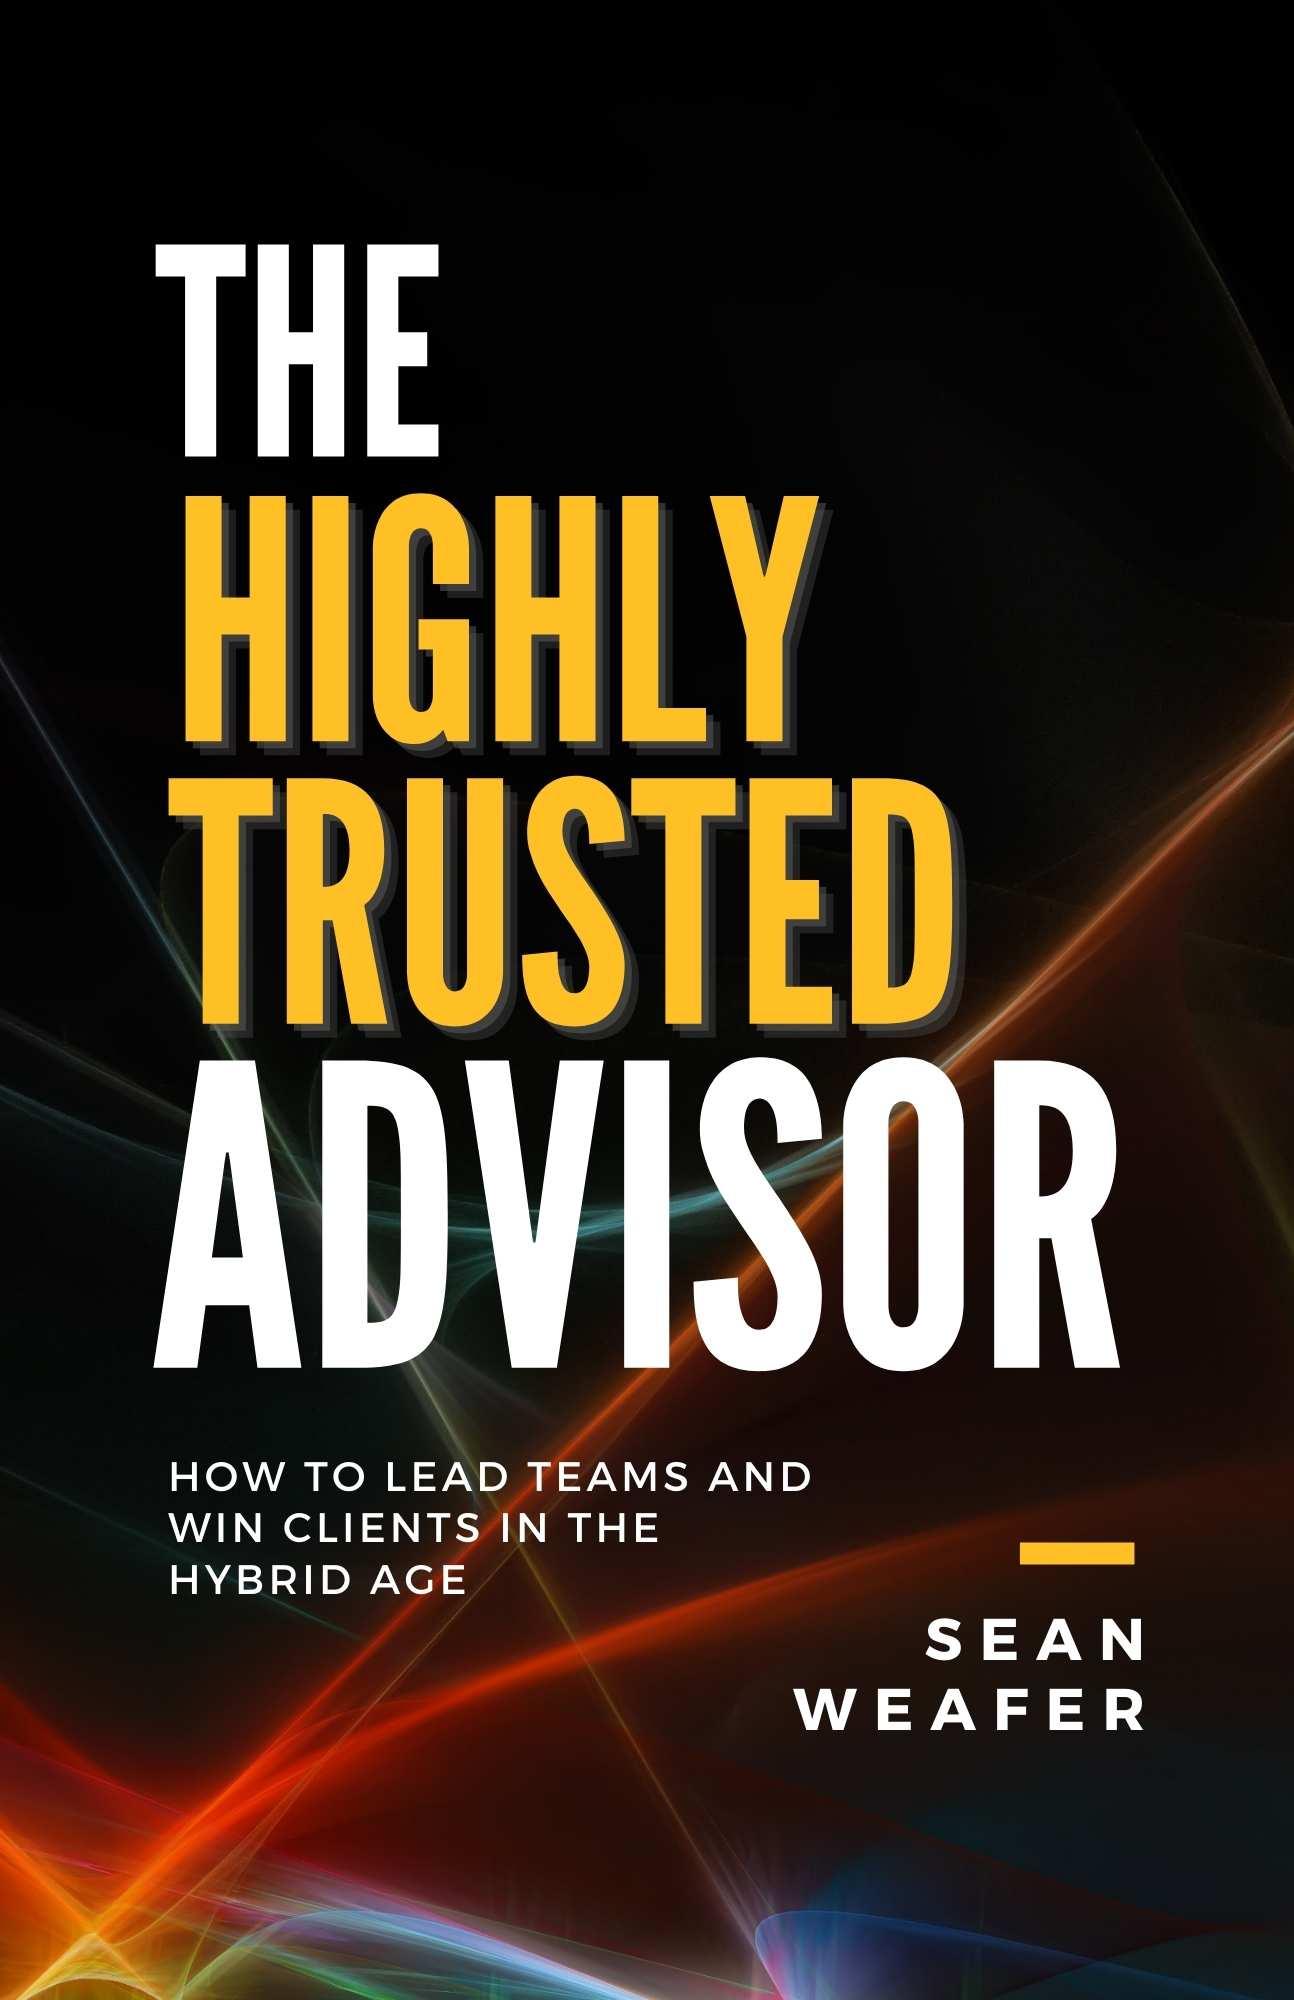 The Highly Trusted Advisor: How to Lead Teams and Win Clients in the Hybrid Age